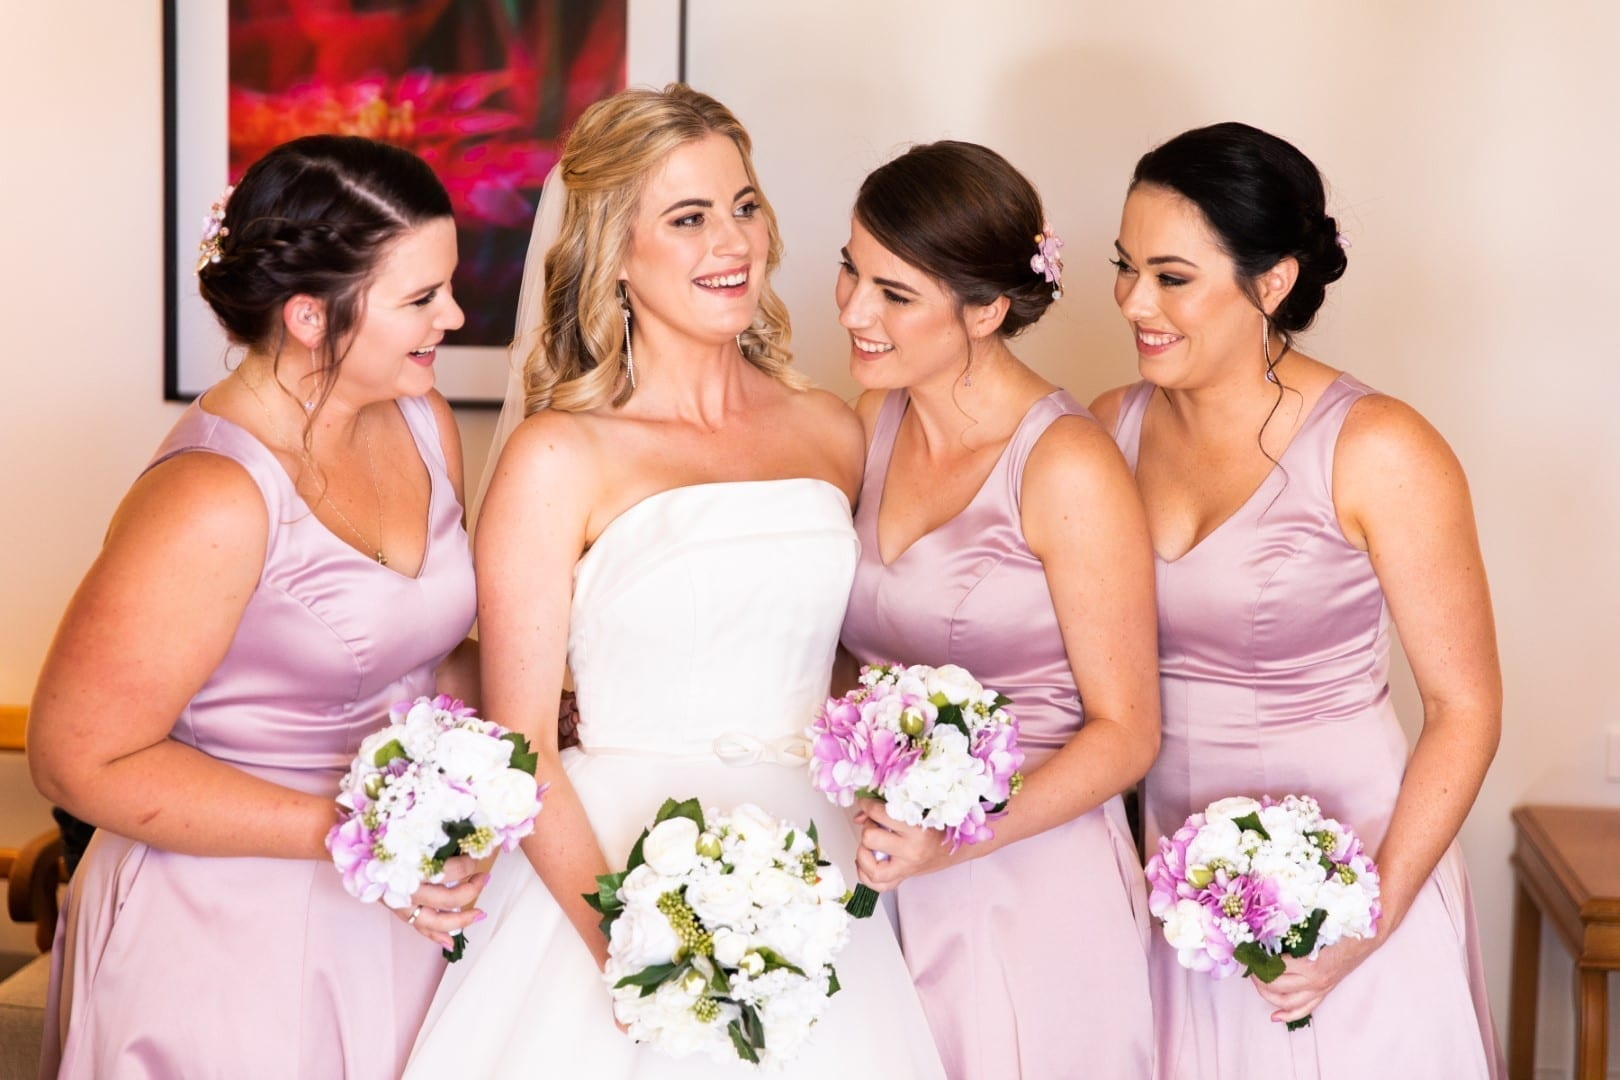 Bride Jess with her beautiful bridesmaids.